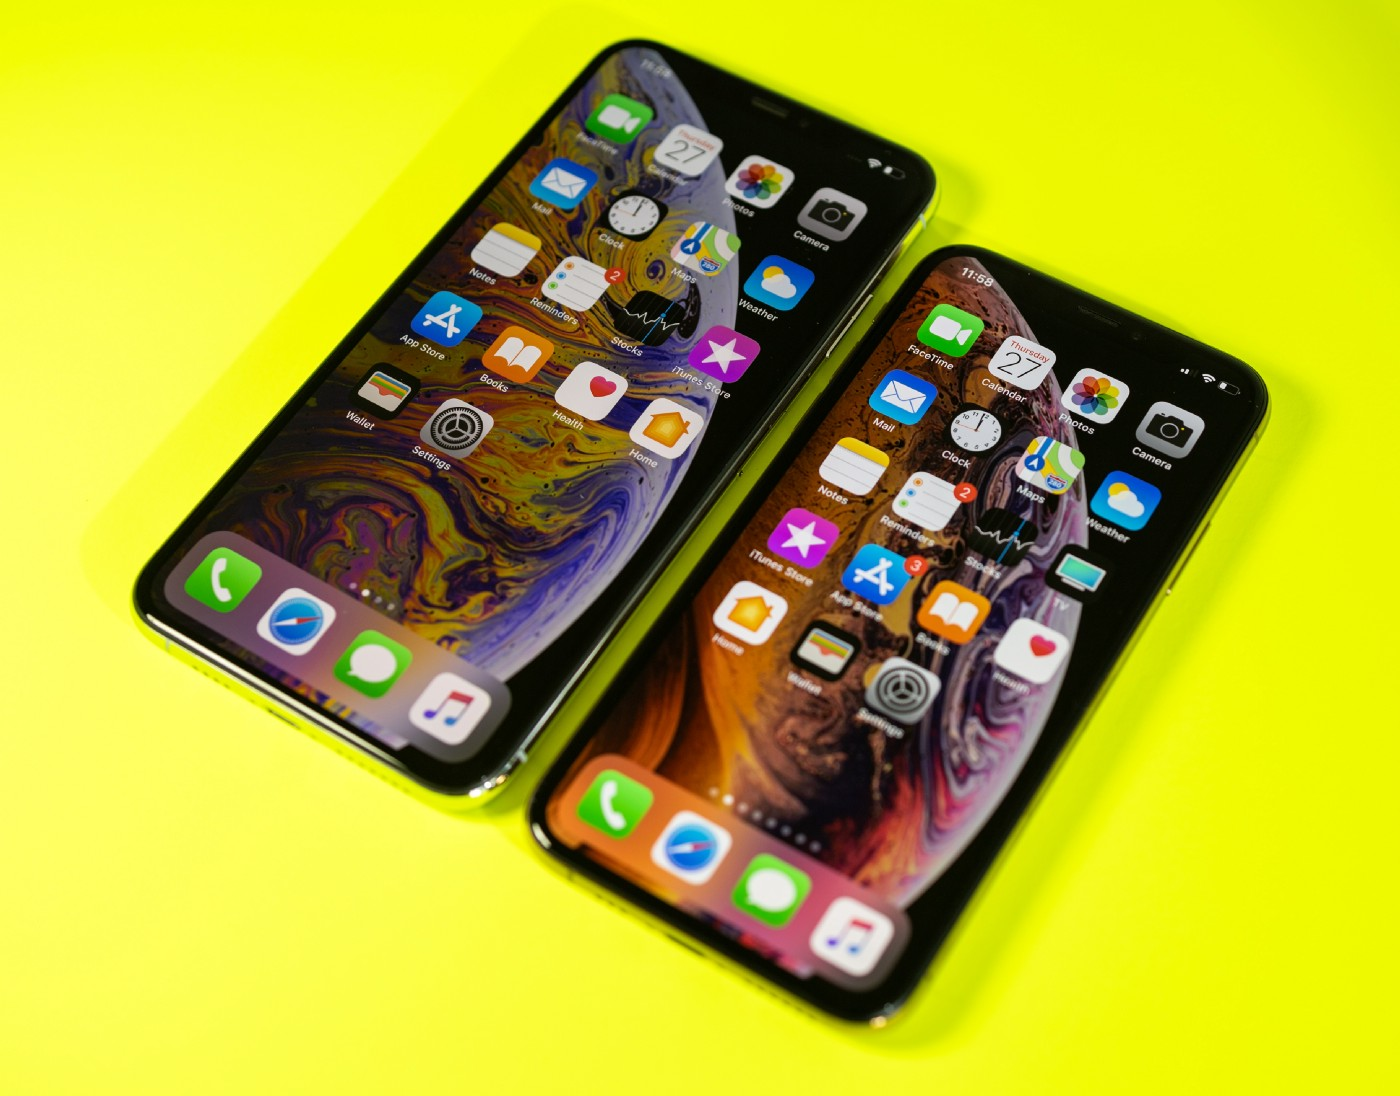 The new Apple iPhone Xs and Xs Max against a bright modern neon yellow background.